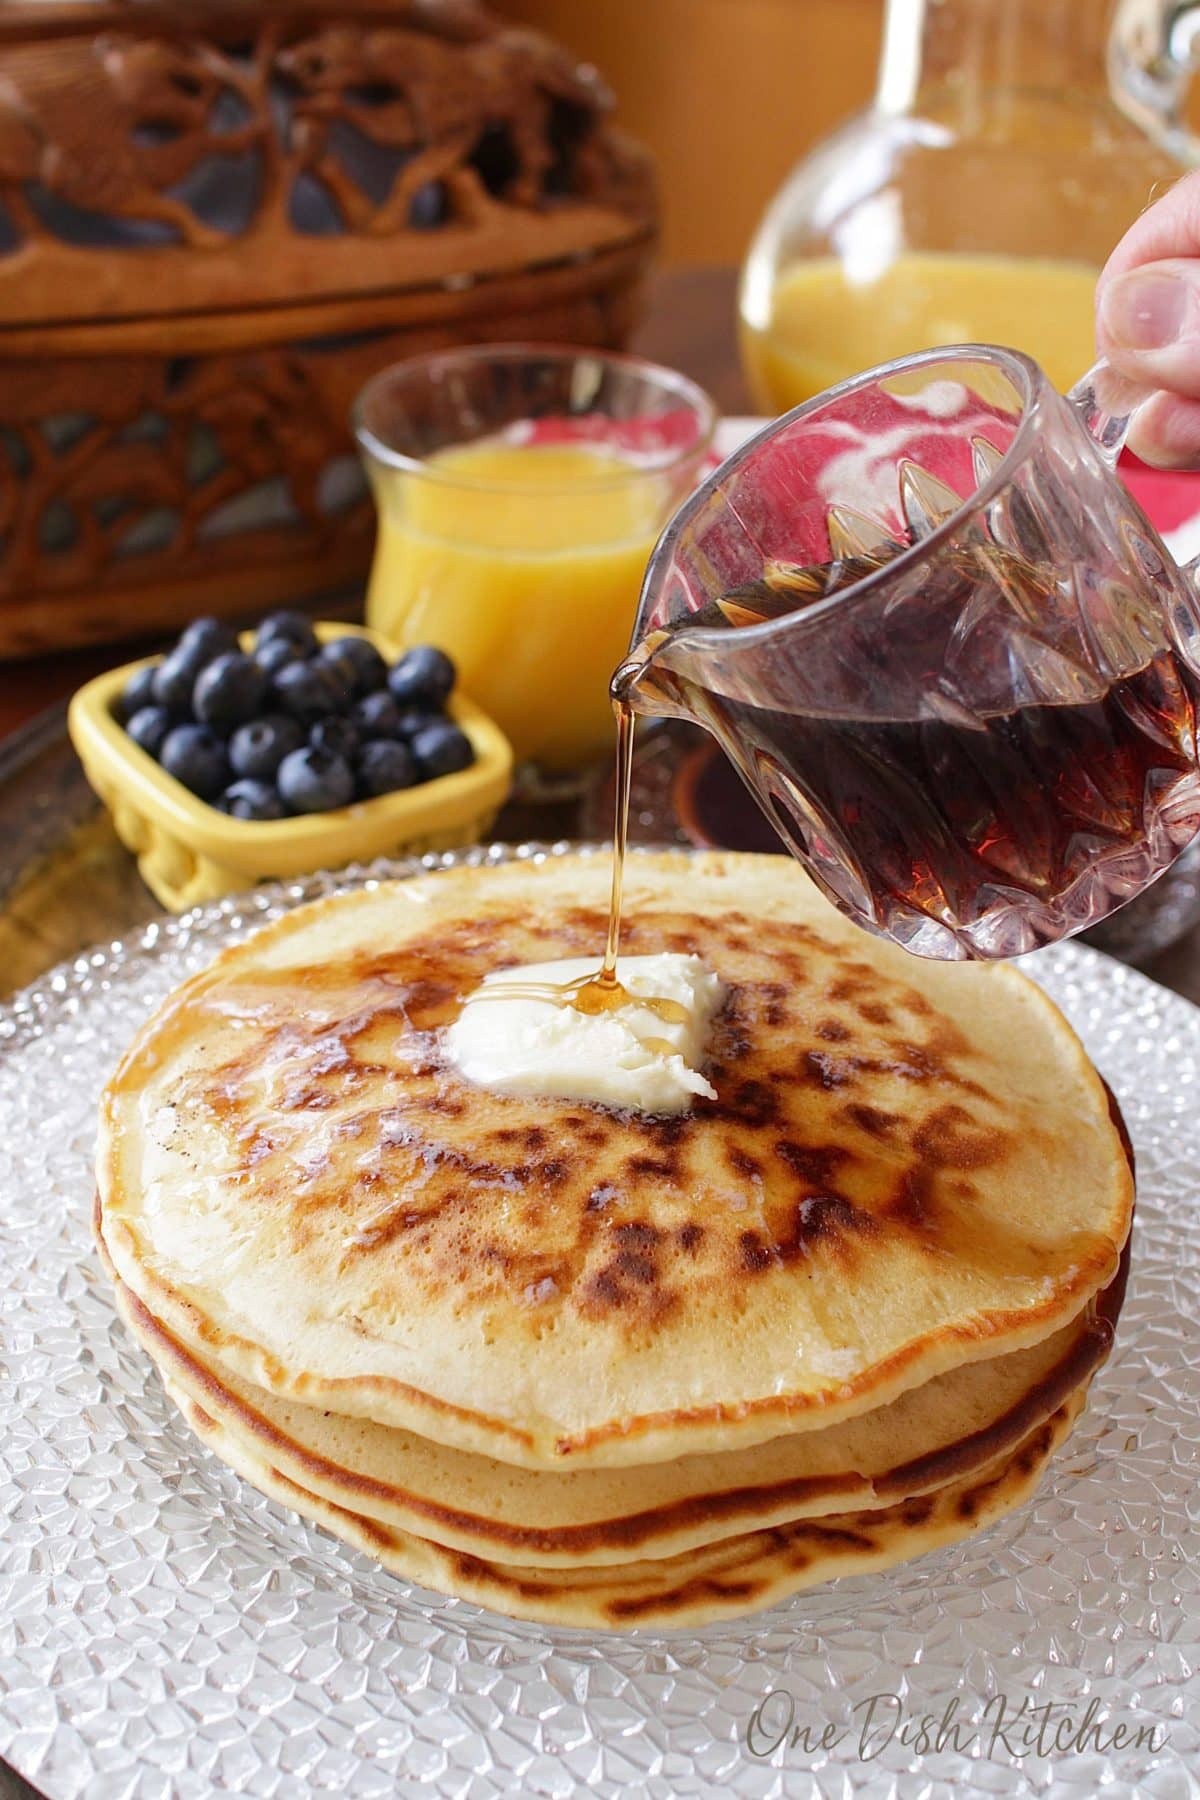 pancakes on a plate with syrup being poured on top.